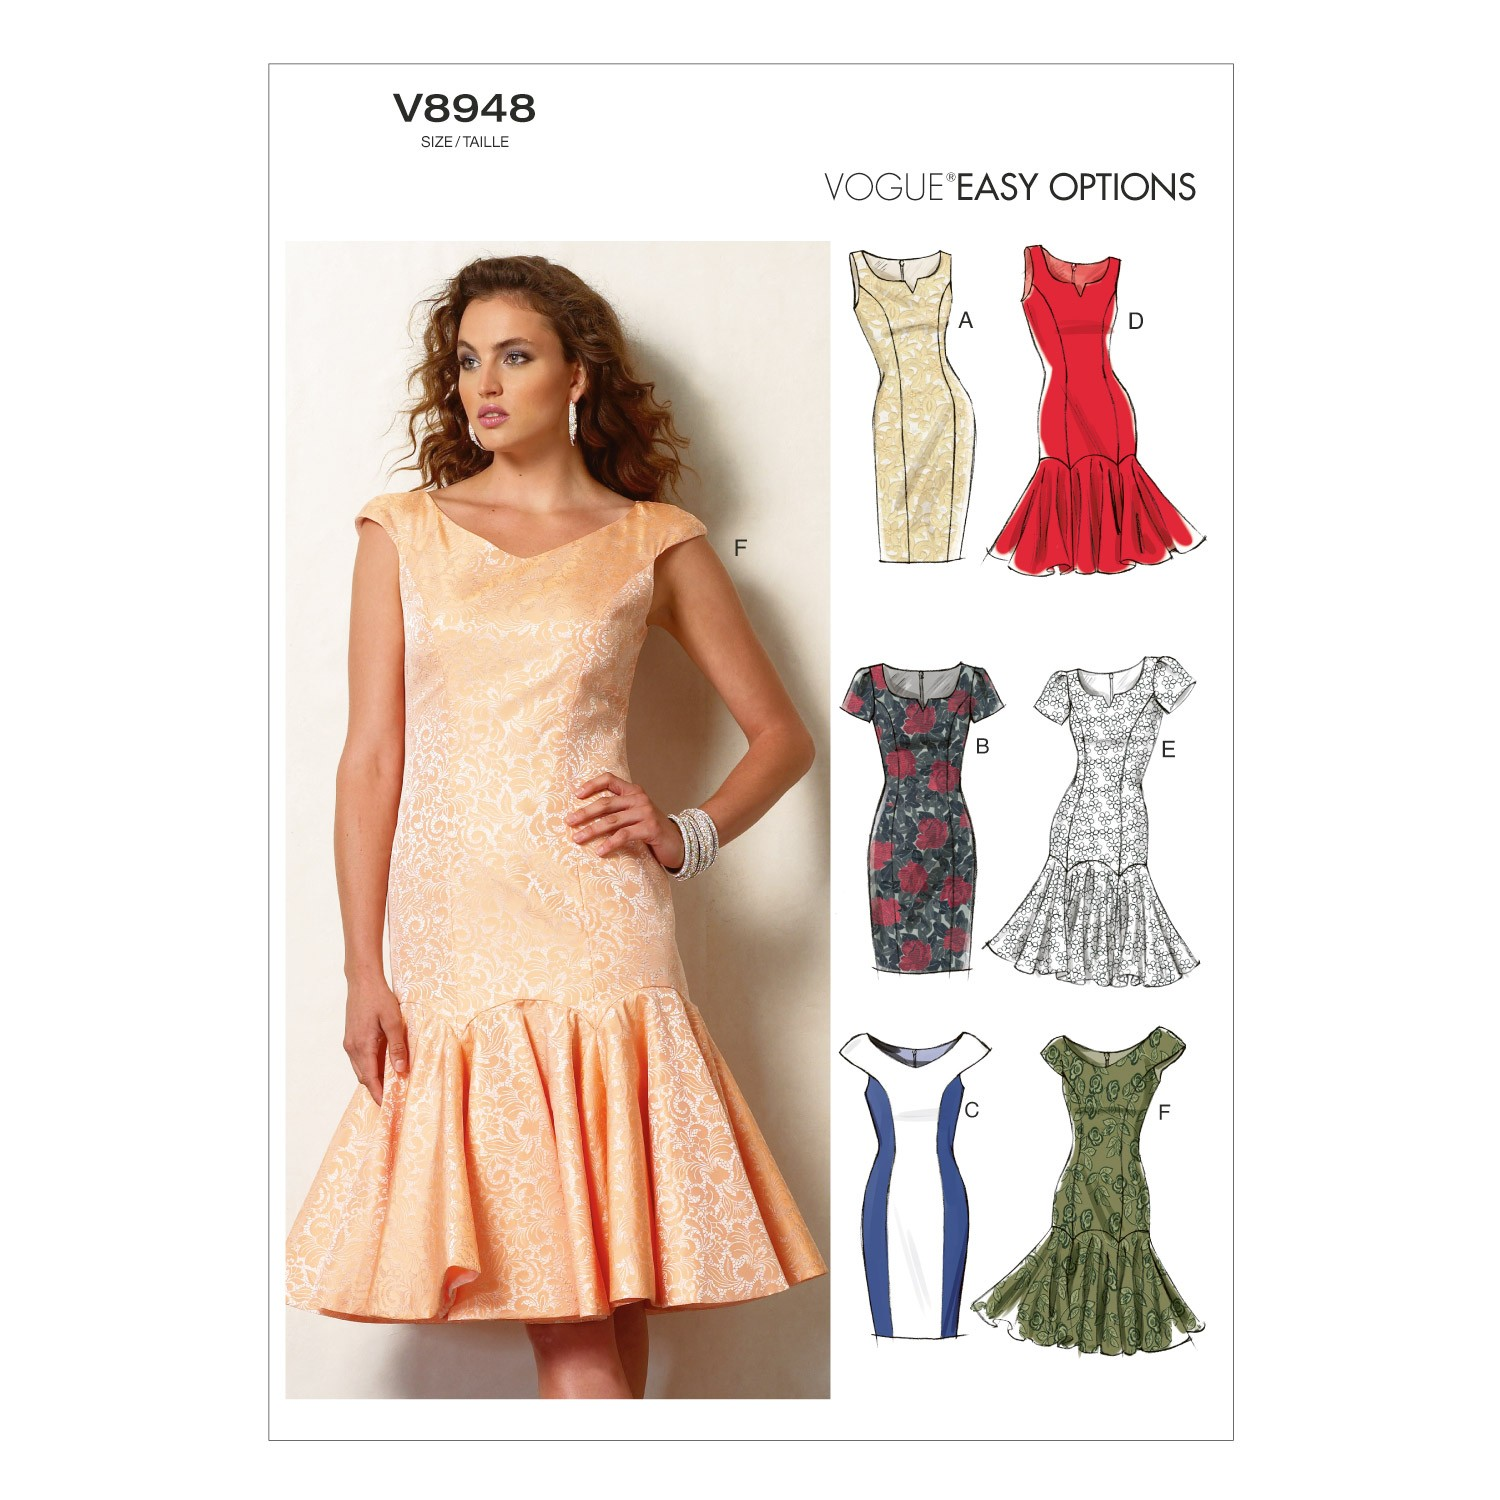 Vogue Sewing Pattern V8948 Women's Petite Dress